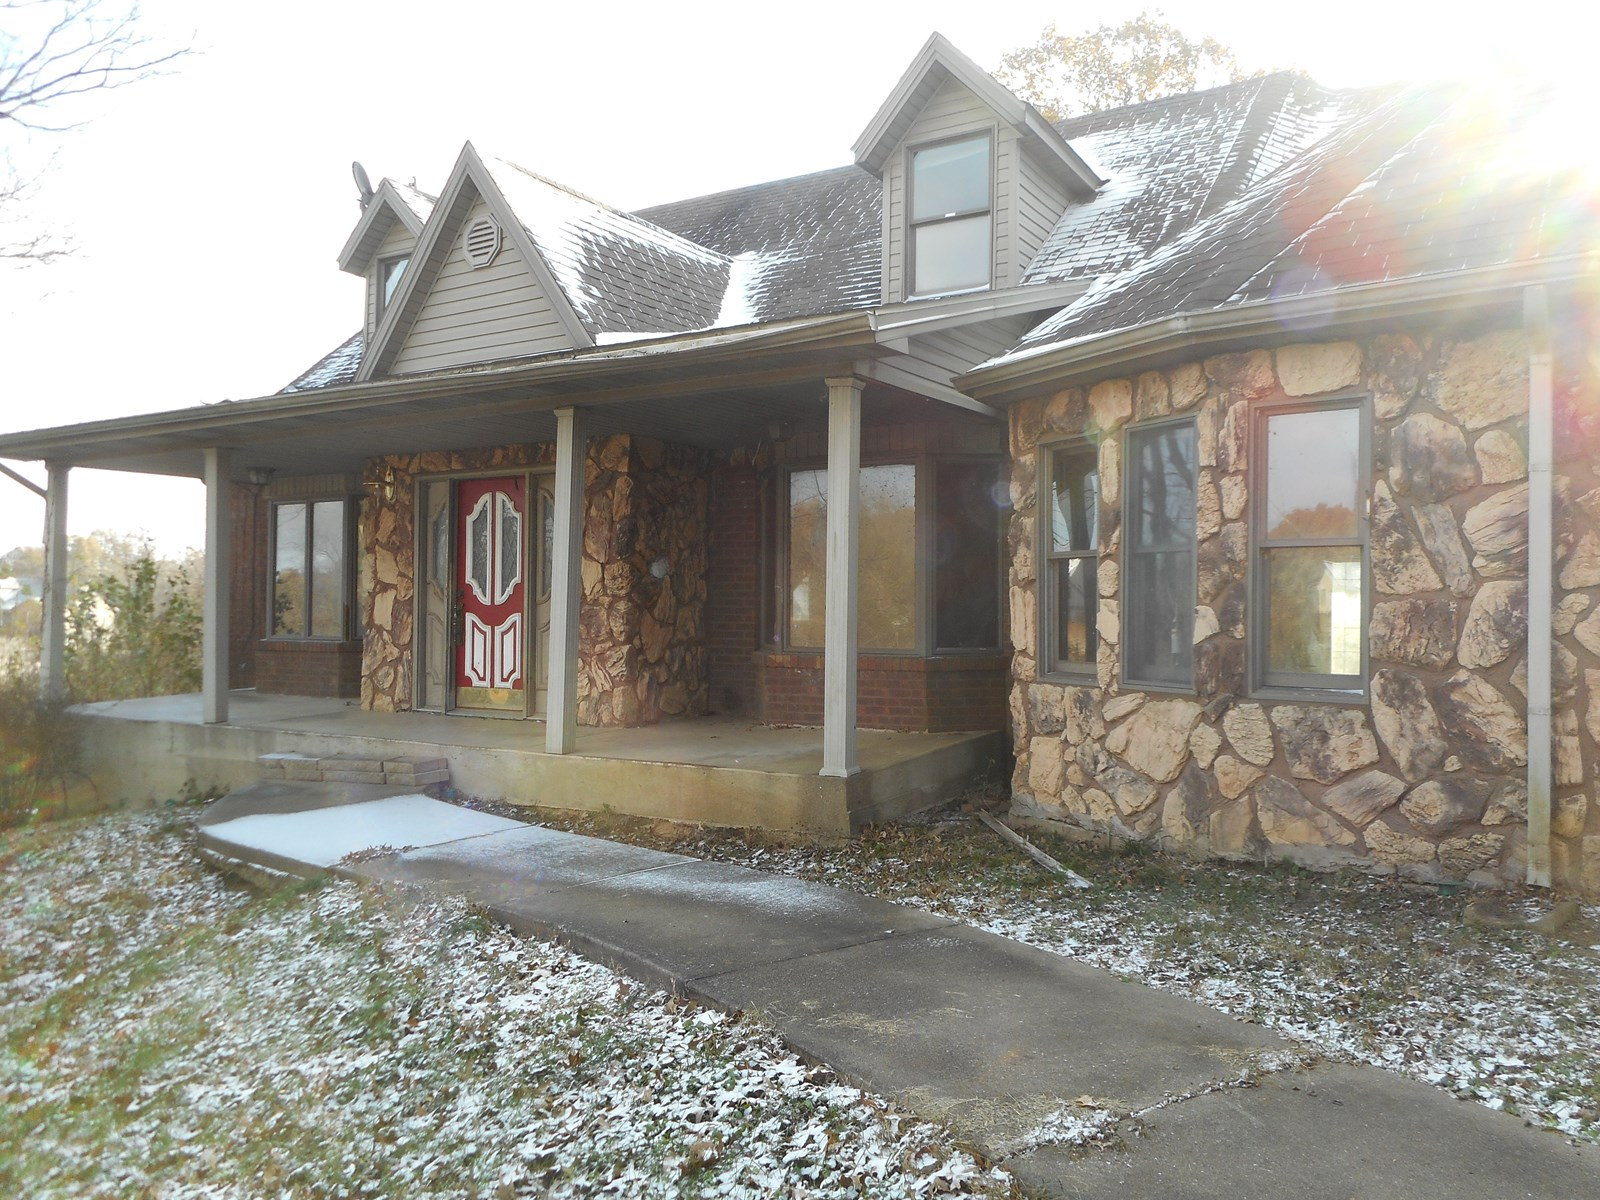 Equestrian Property For Sale in Scott City, Missouri